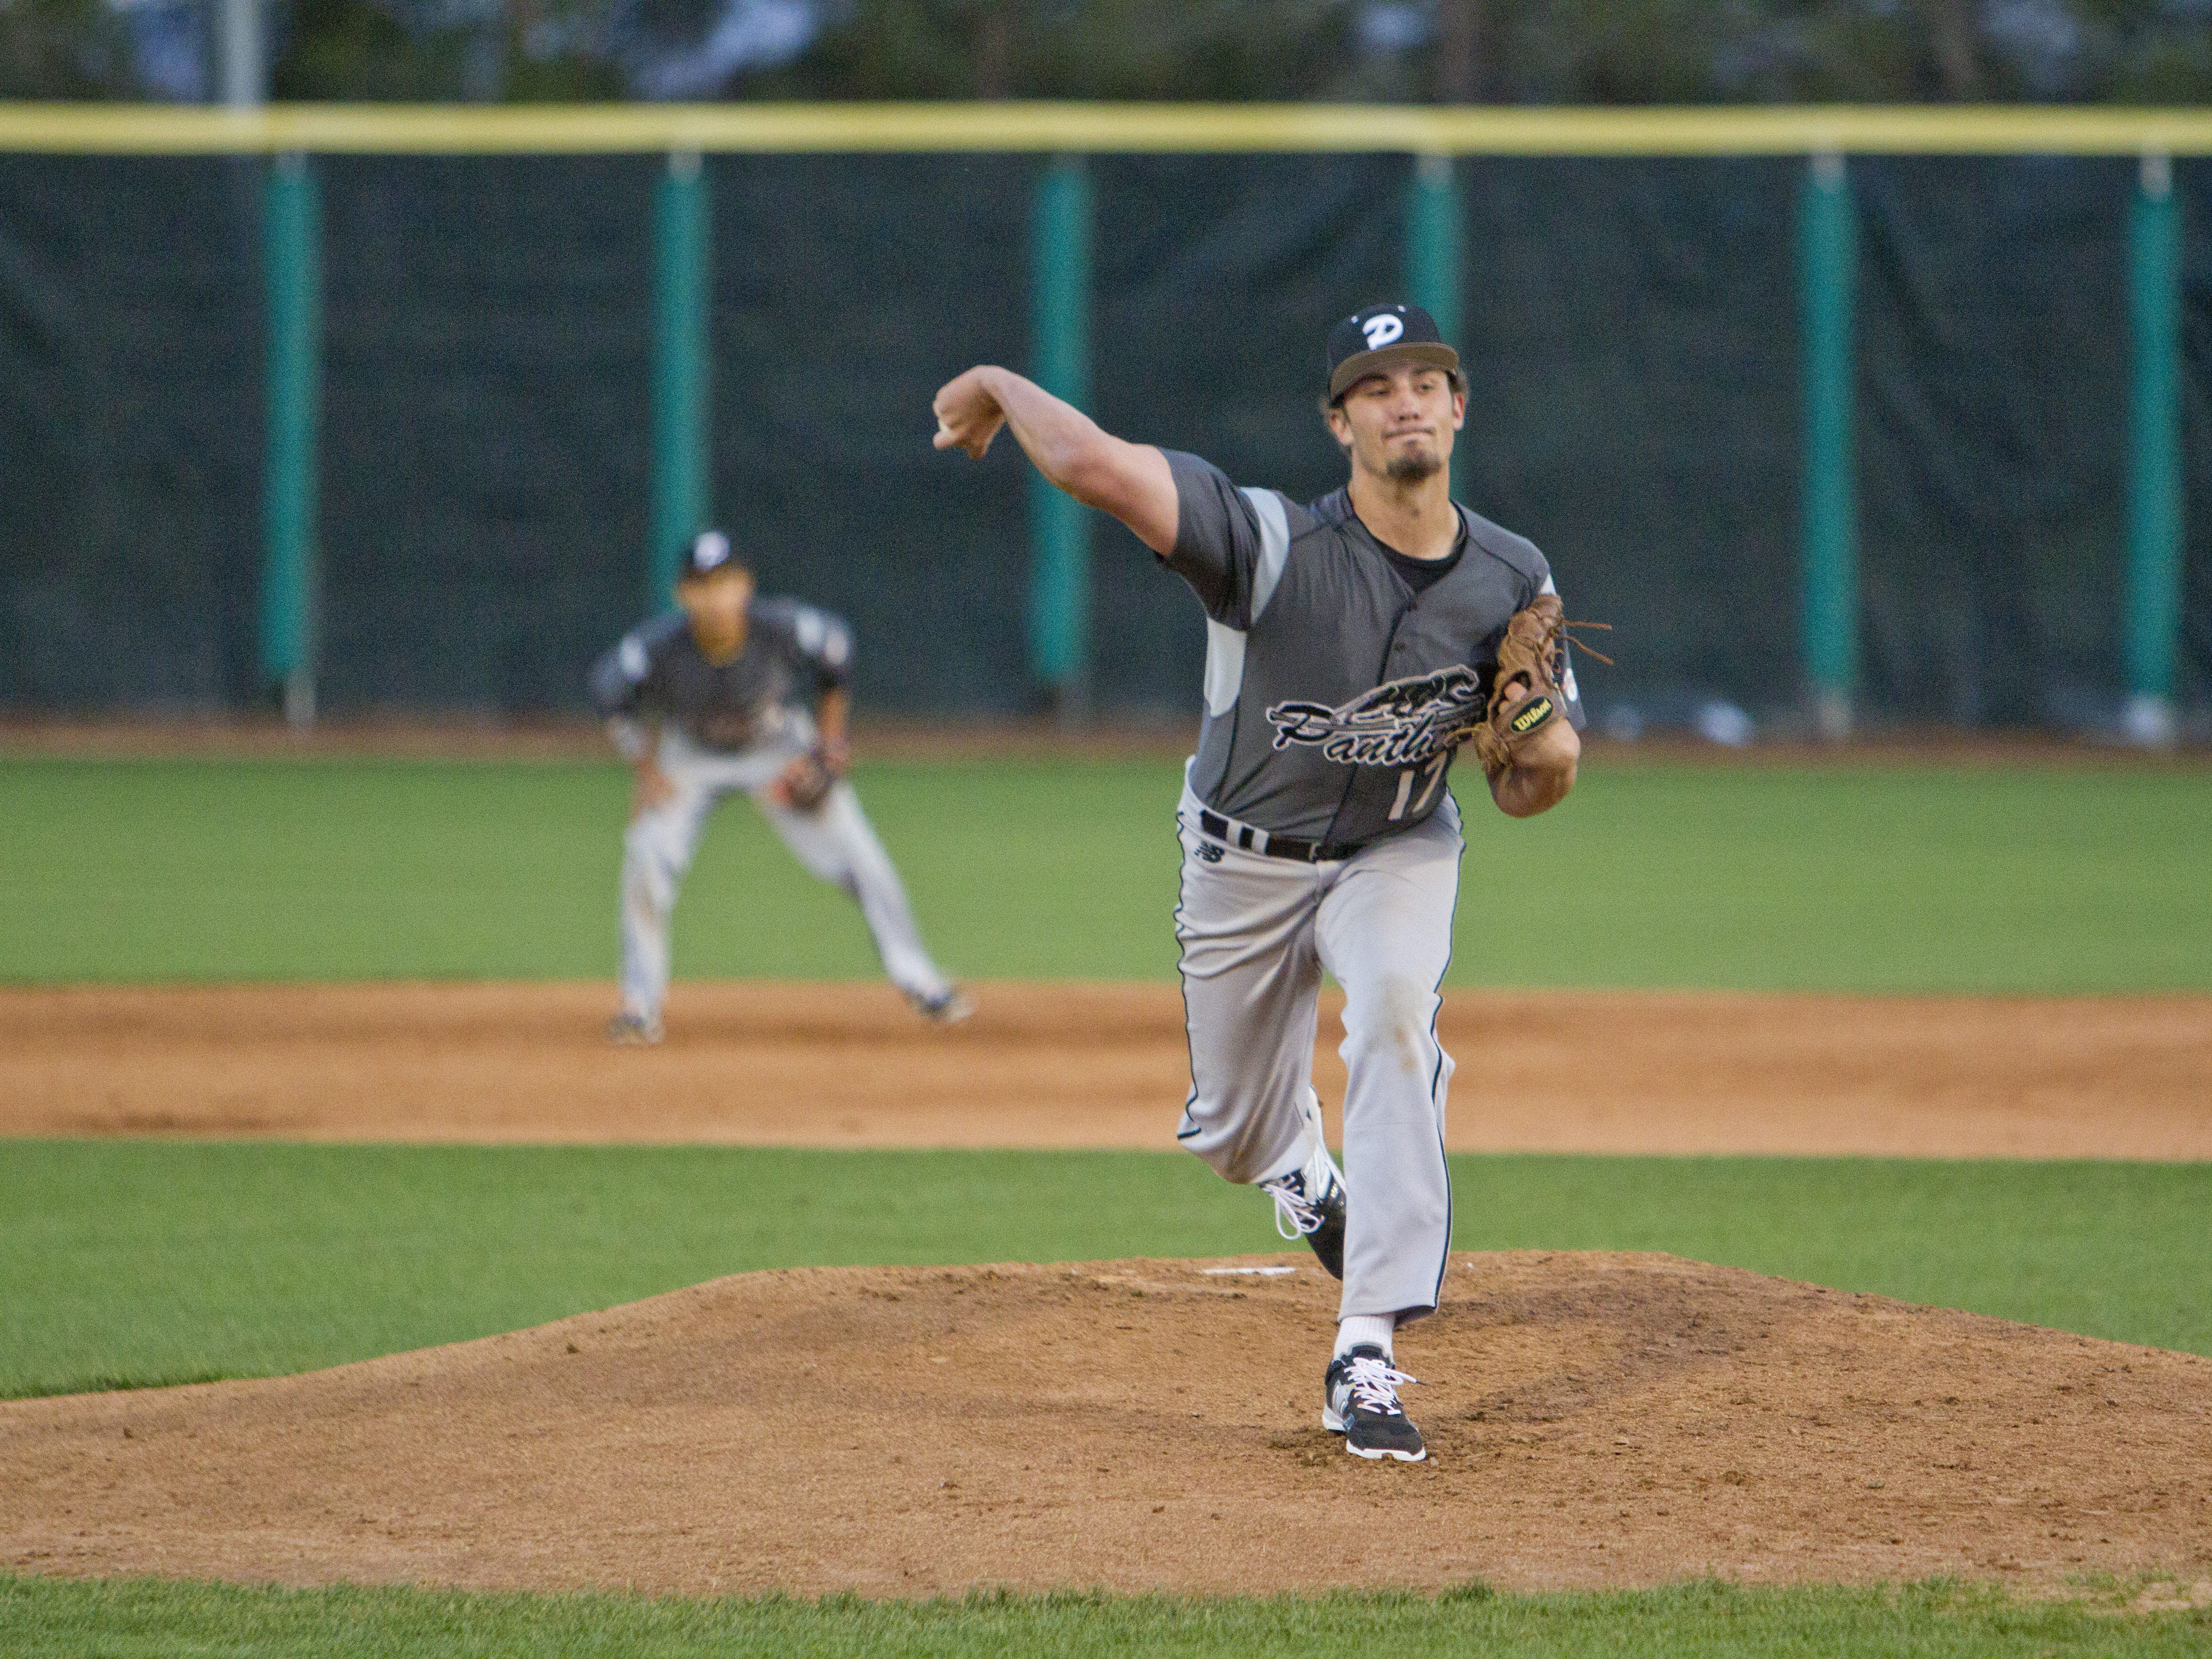 Pine View pitcher Dakota Donovan throws against Arbor View at Bruce Hurst Field on March 12.